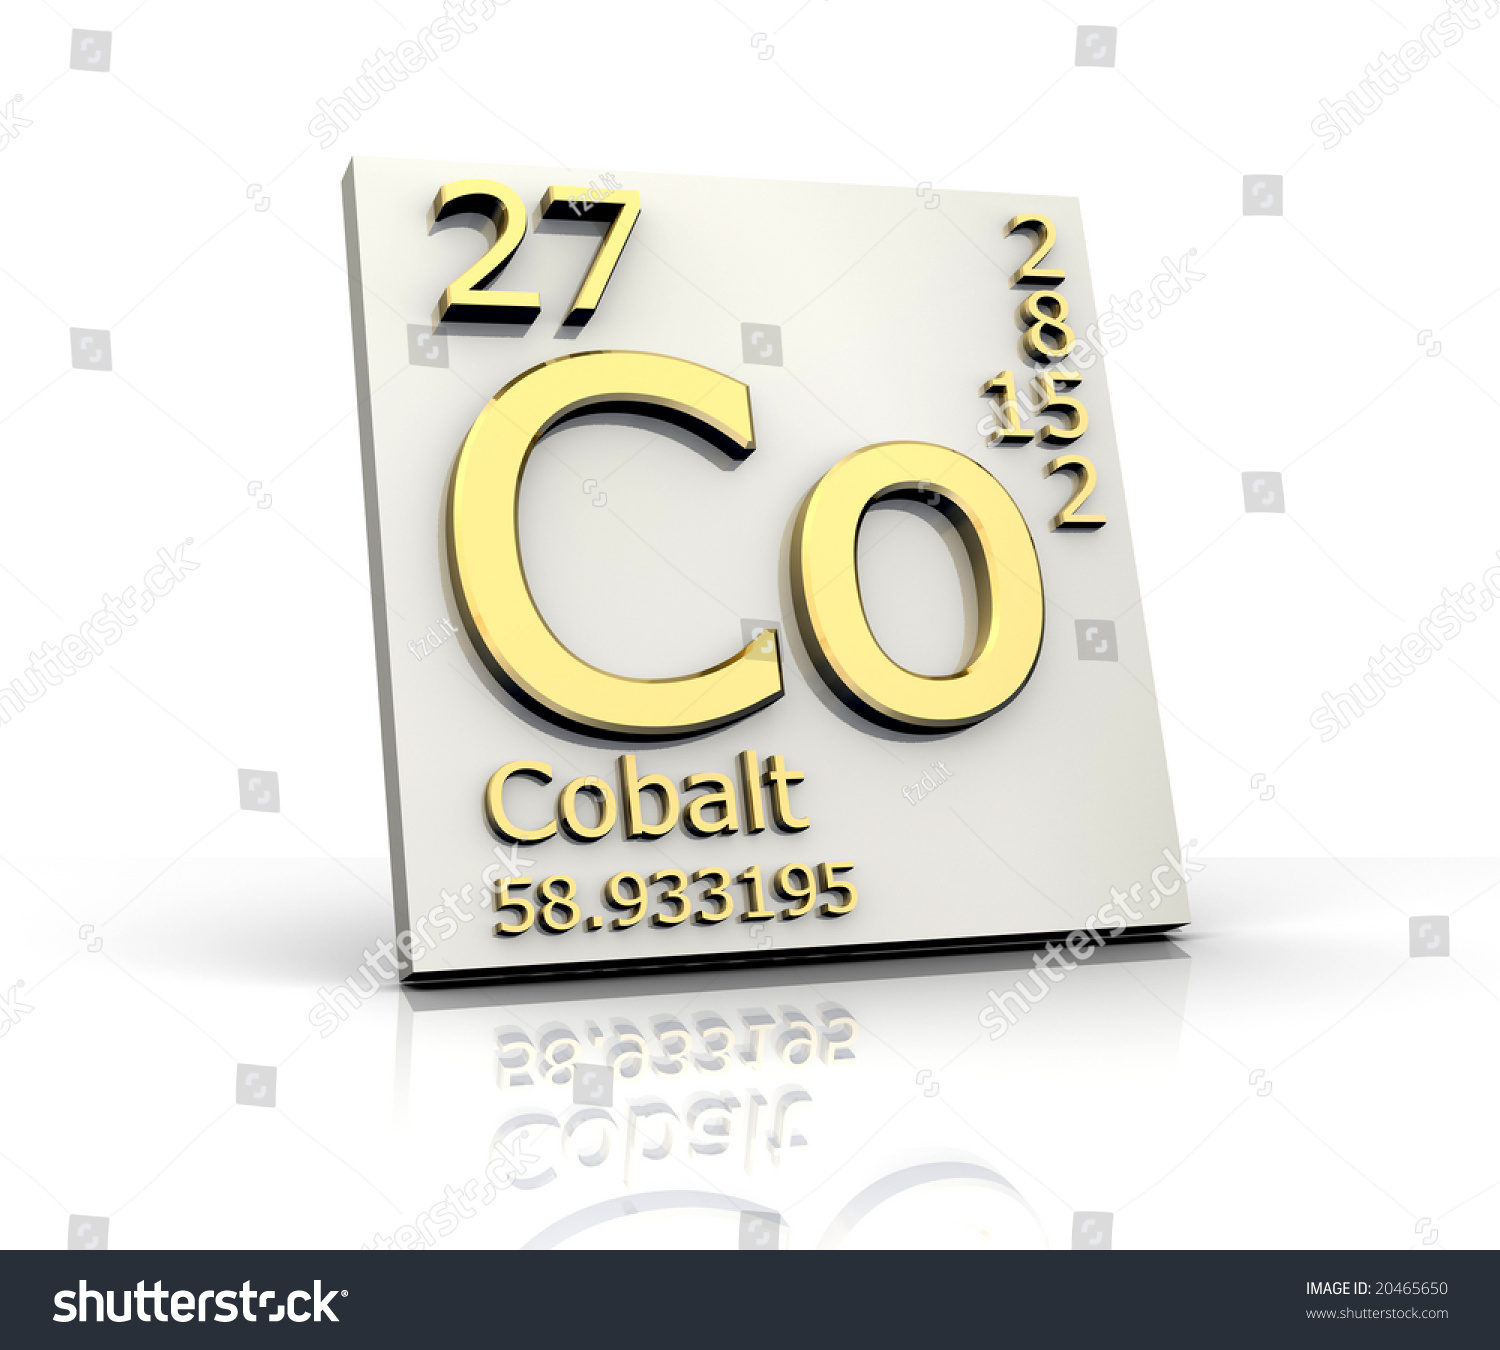 Cobalt form periodic table elements stock illustration 20465650 cobalt form periodic table of elements gamestrikefo Gallery